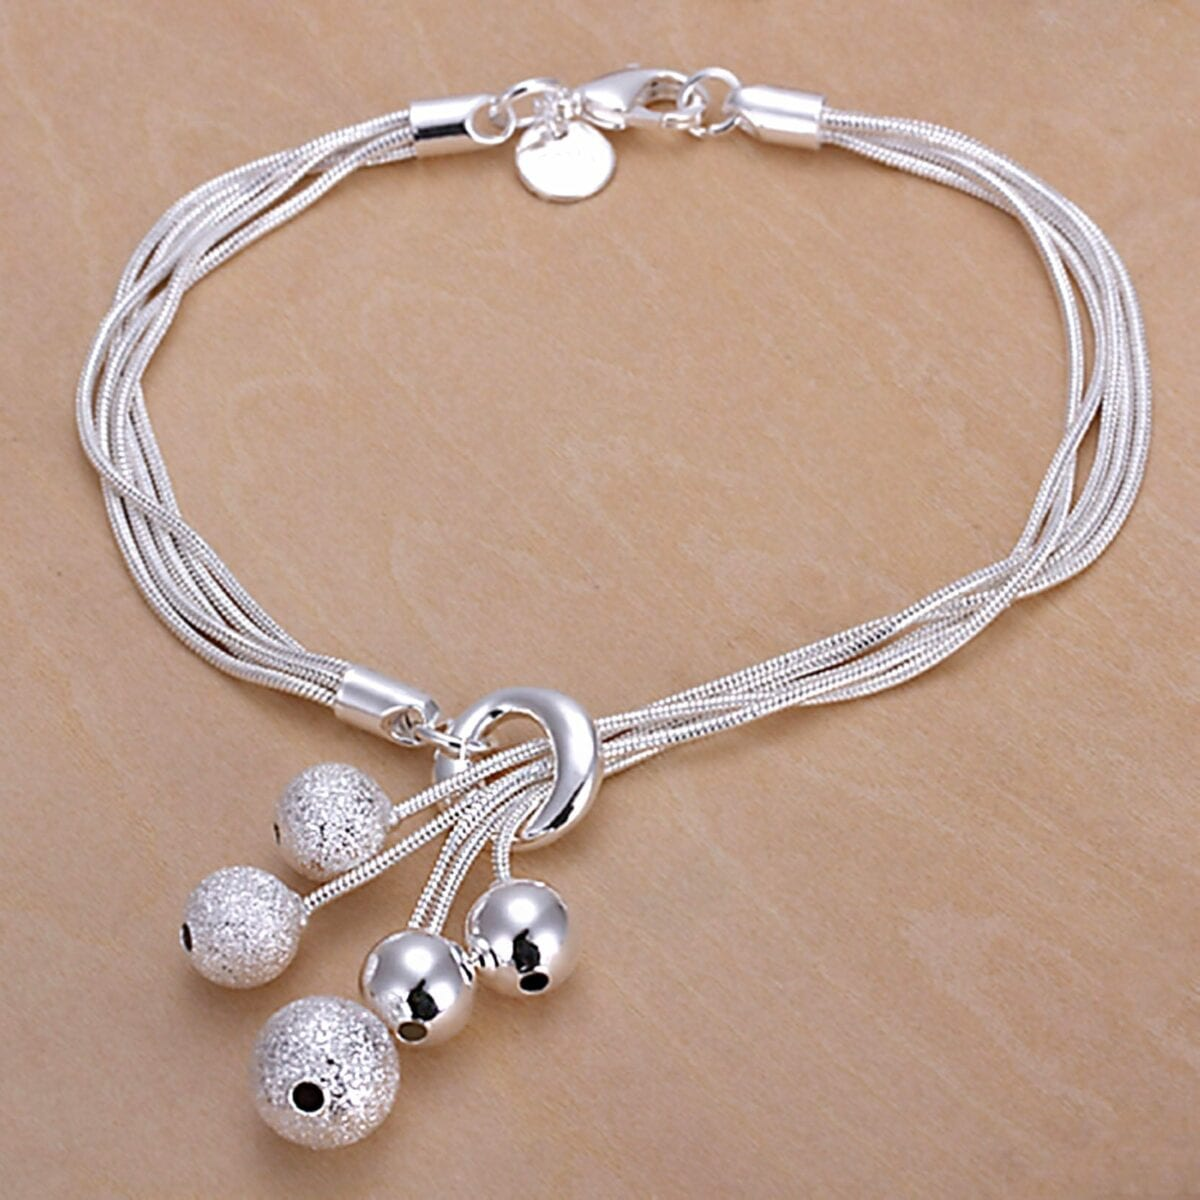 Silver Plated Small Beads Bracelet